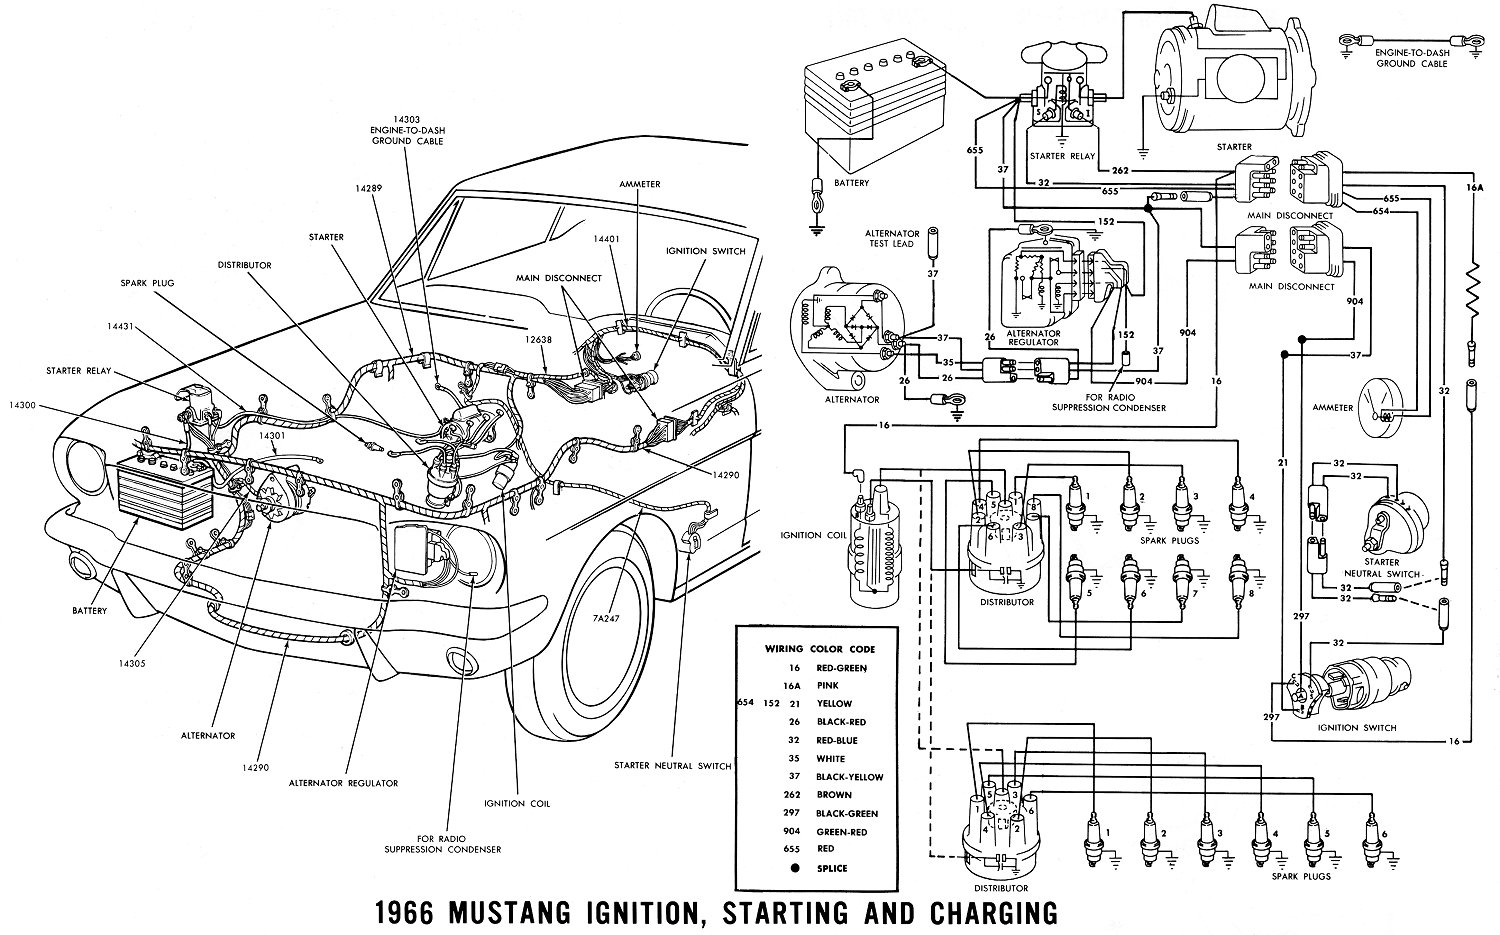 1970 Mustang Ignition Diagram Trusted Wiring Diagrams Fordmanuals 1969 Colorized Ebook Portal U2022 1967